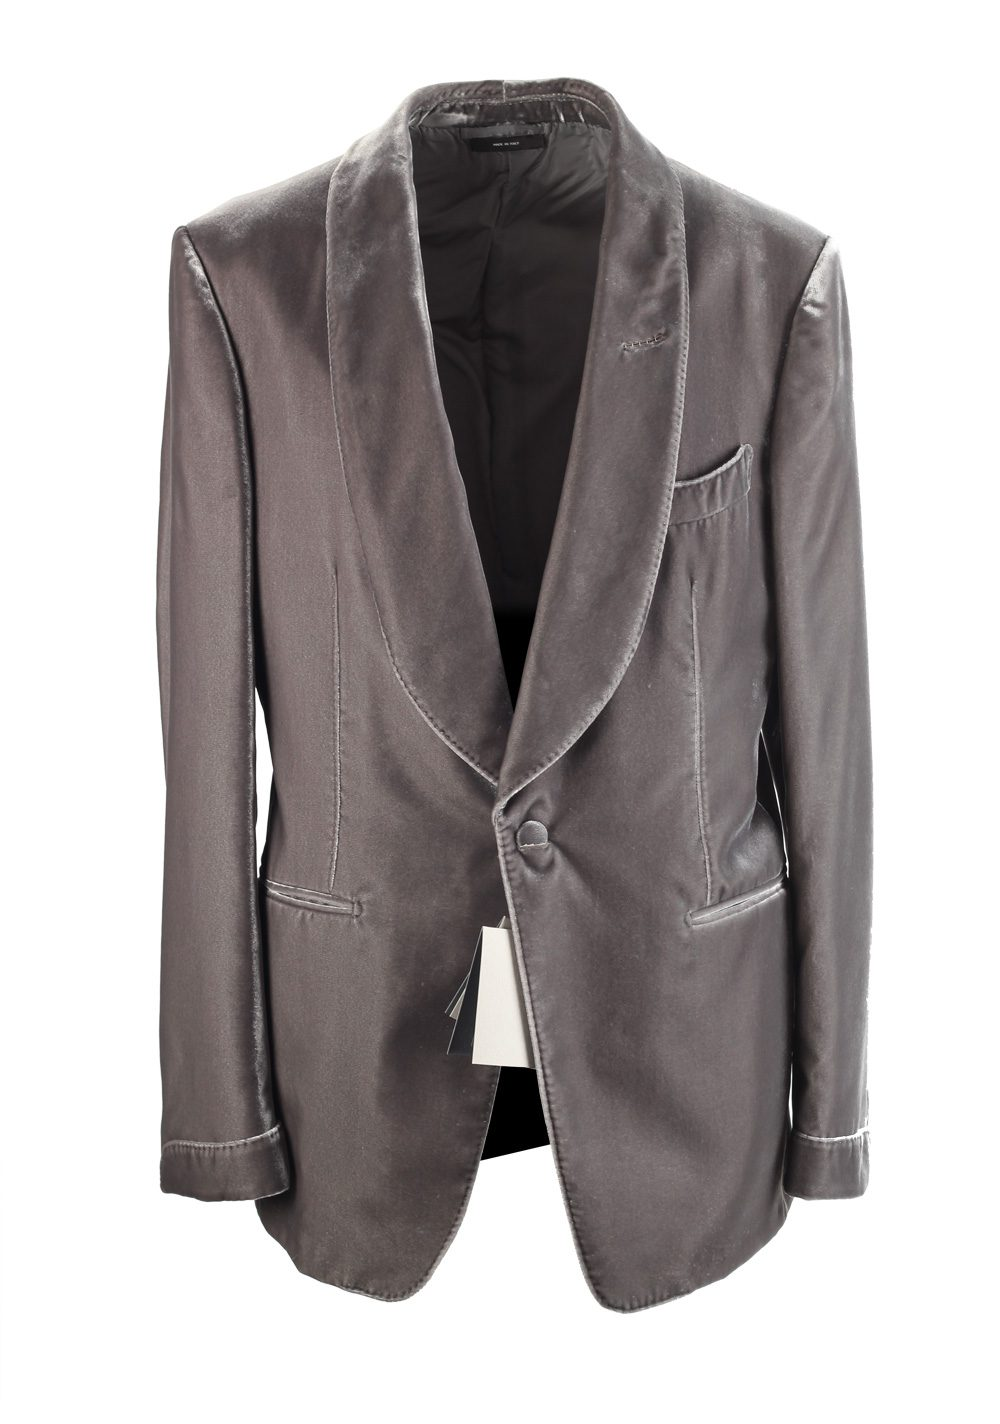 TOM FORD Shelton Shawl Collar Velvet Tuxedo Dinner Jacket | Costume Limité